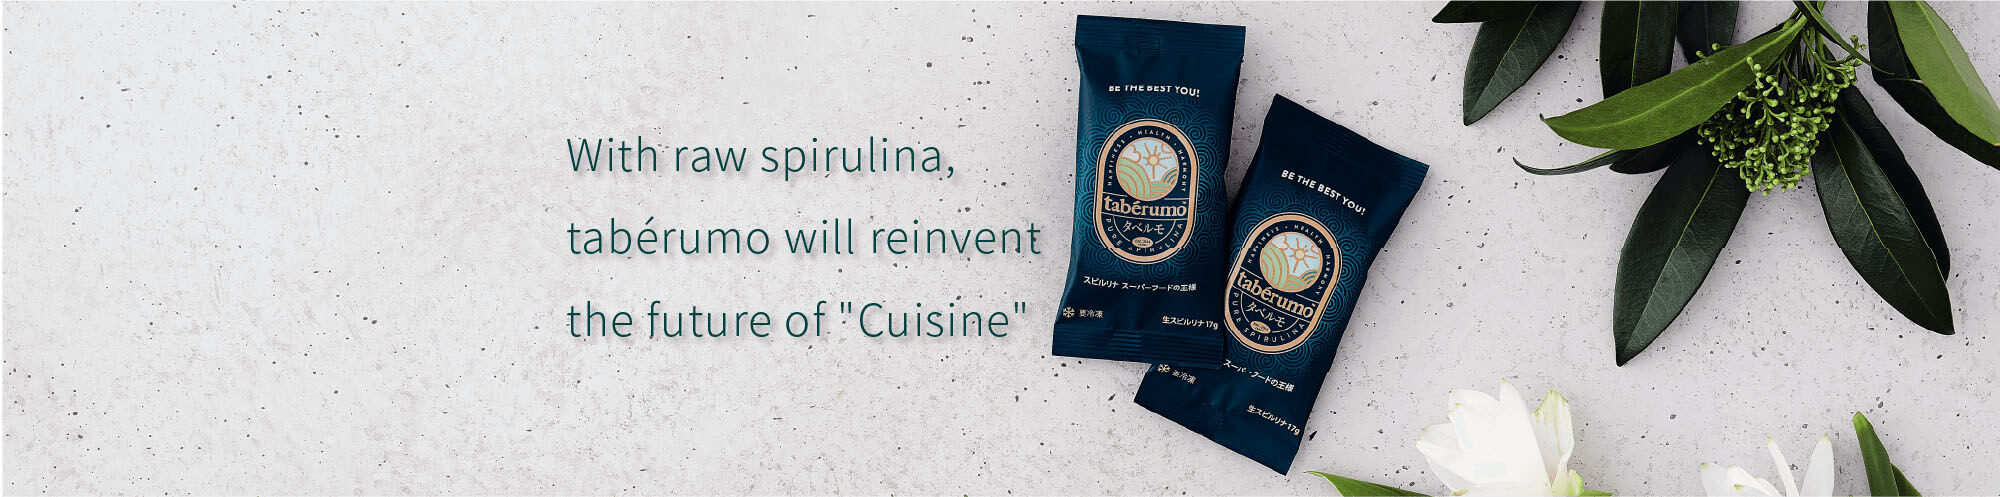 With raw spirulina, tabérumo will reinvent the future of Cuisine